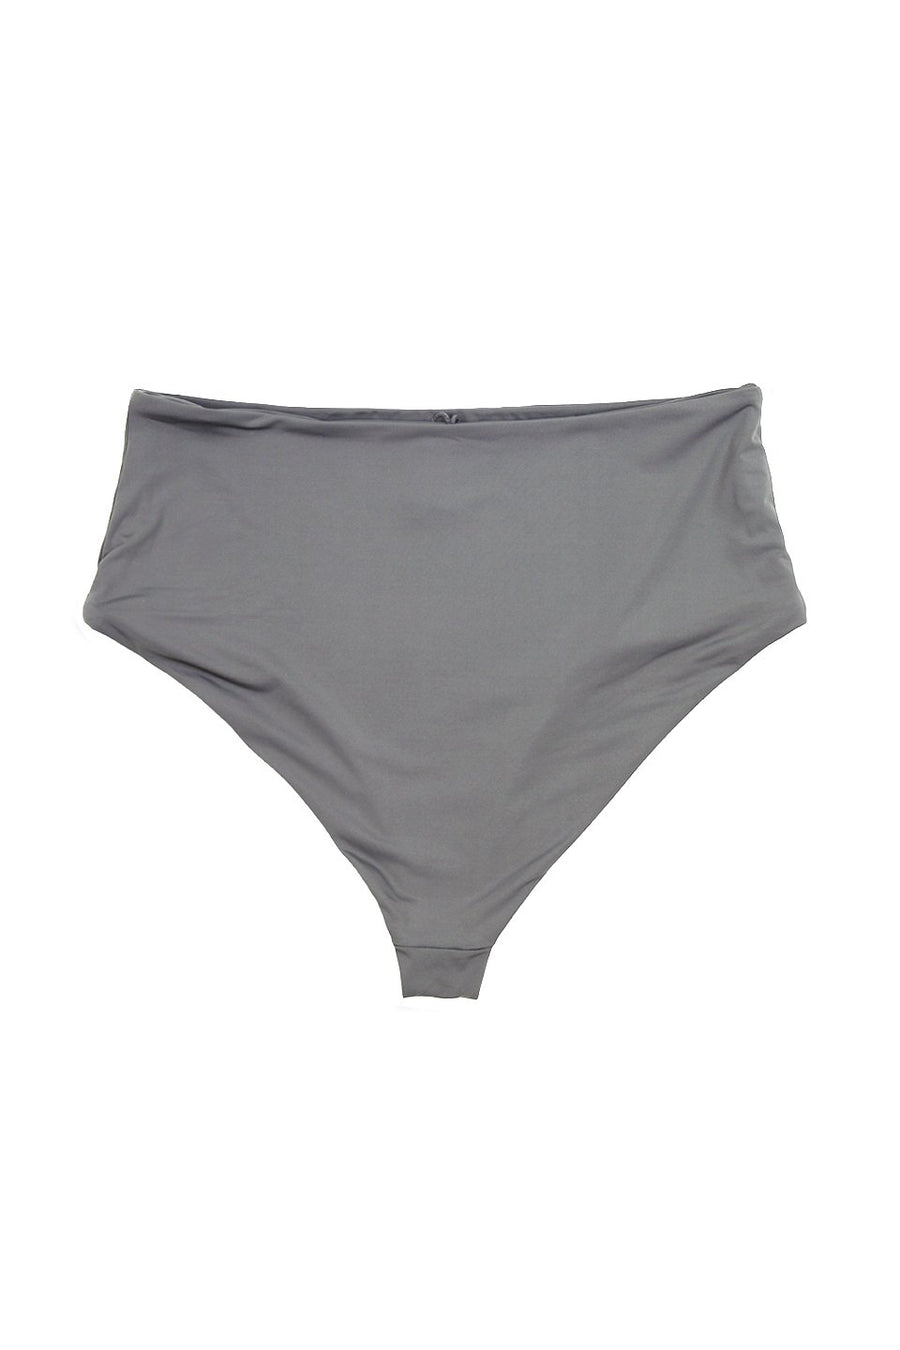 Seamless Moderate Coverage Hi Waist Bottom - Stone